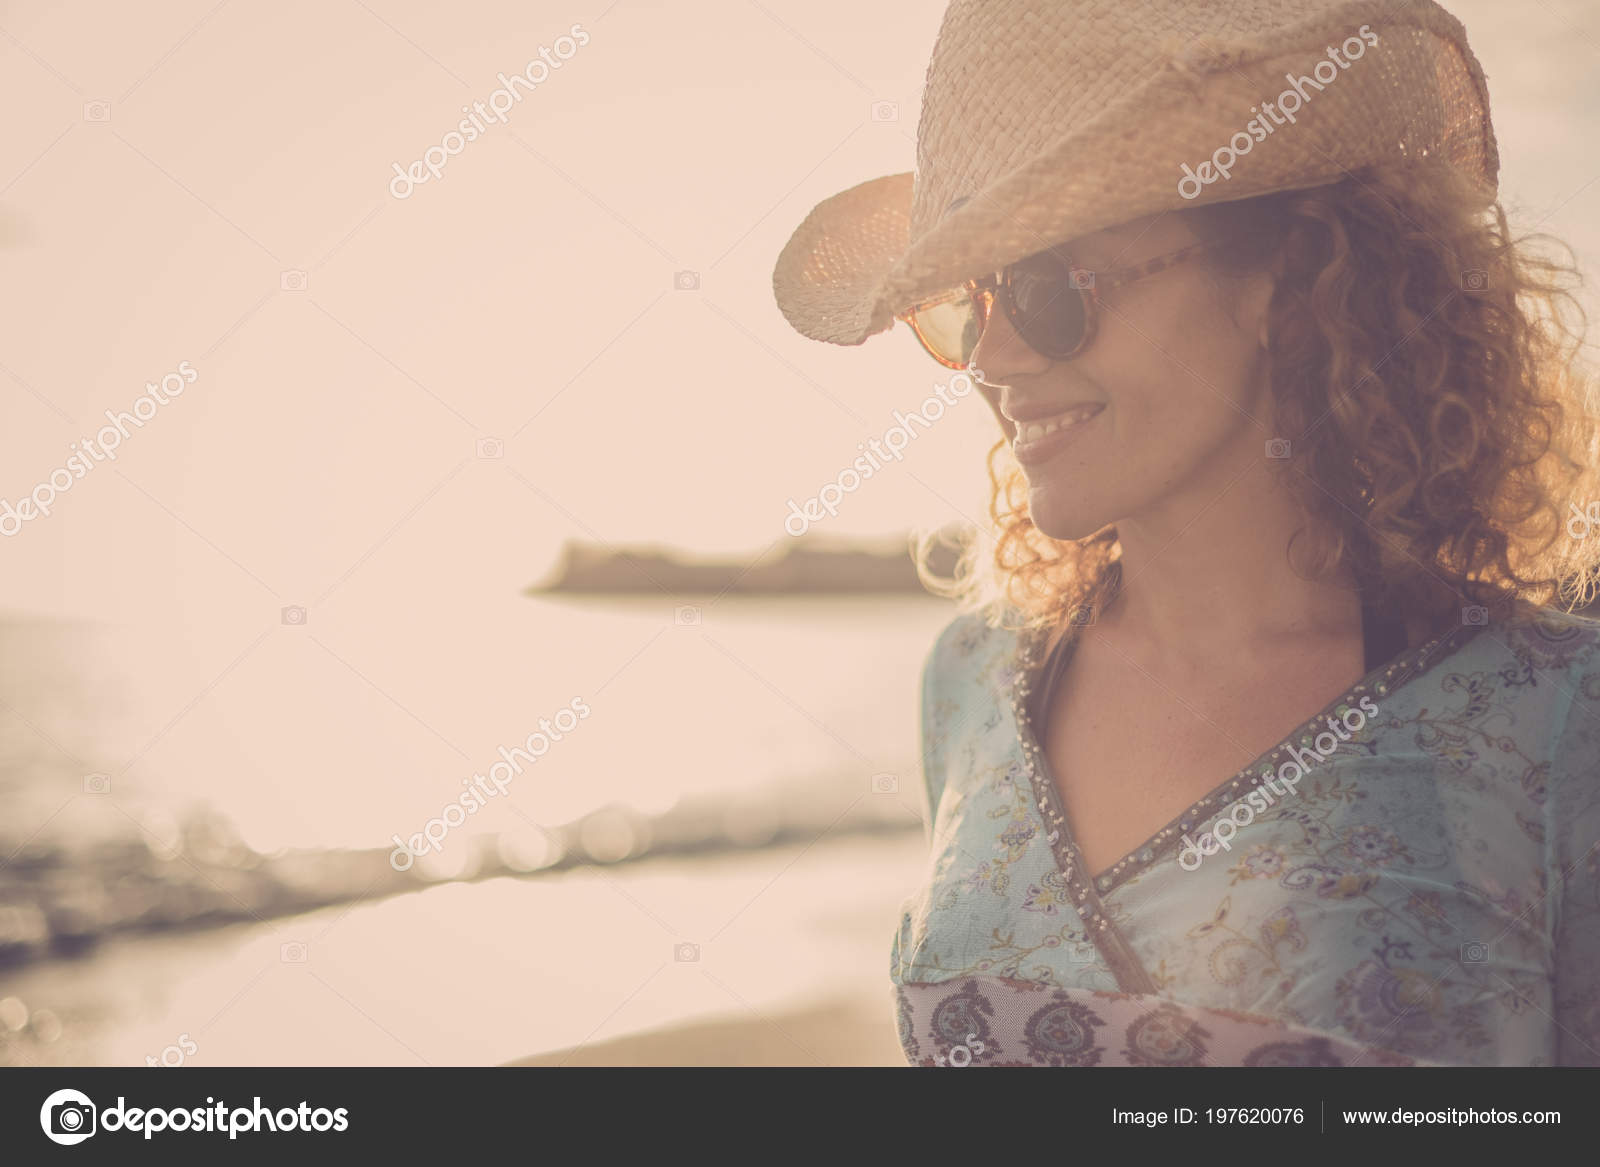 8e70f245e6ade Beautiful and wonderful blonde curly hair model middle age with cowboy hat  smile and pose at the beach with golden sunset in the background. colored  and ...